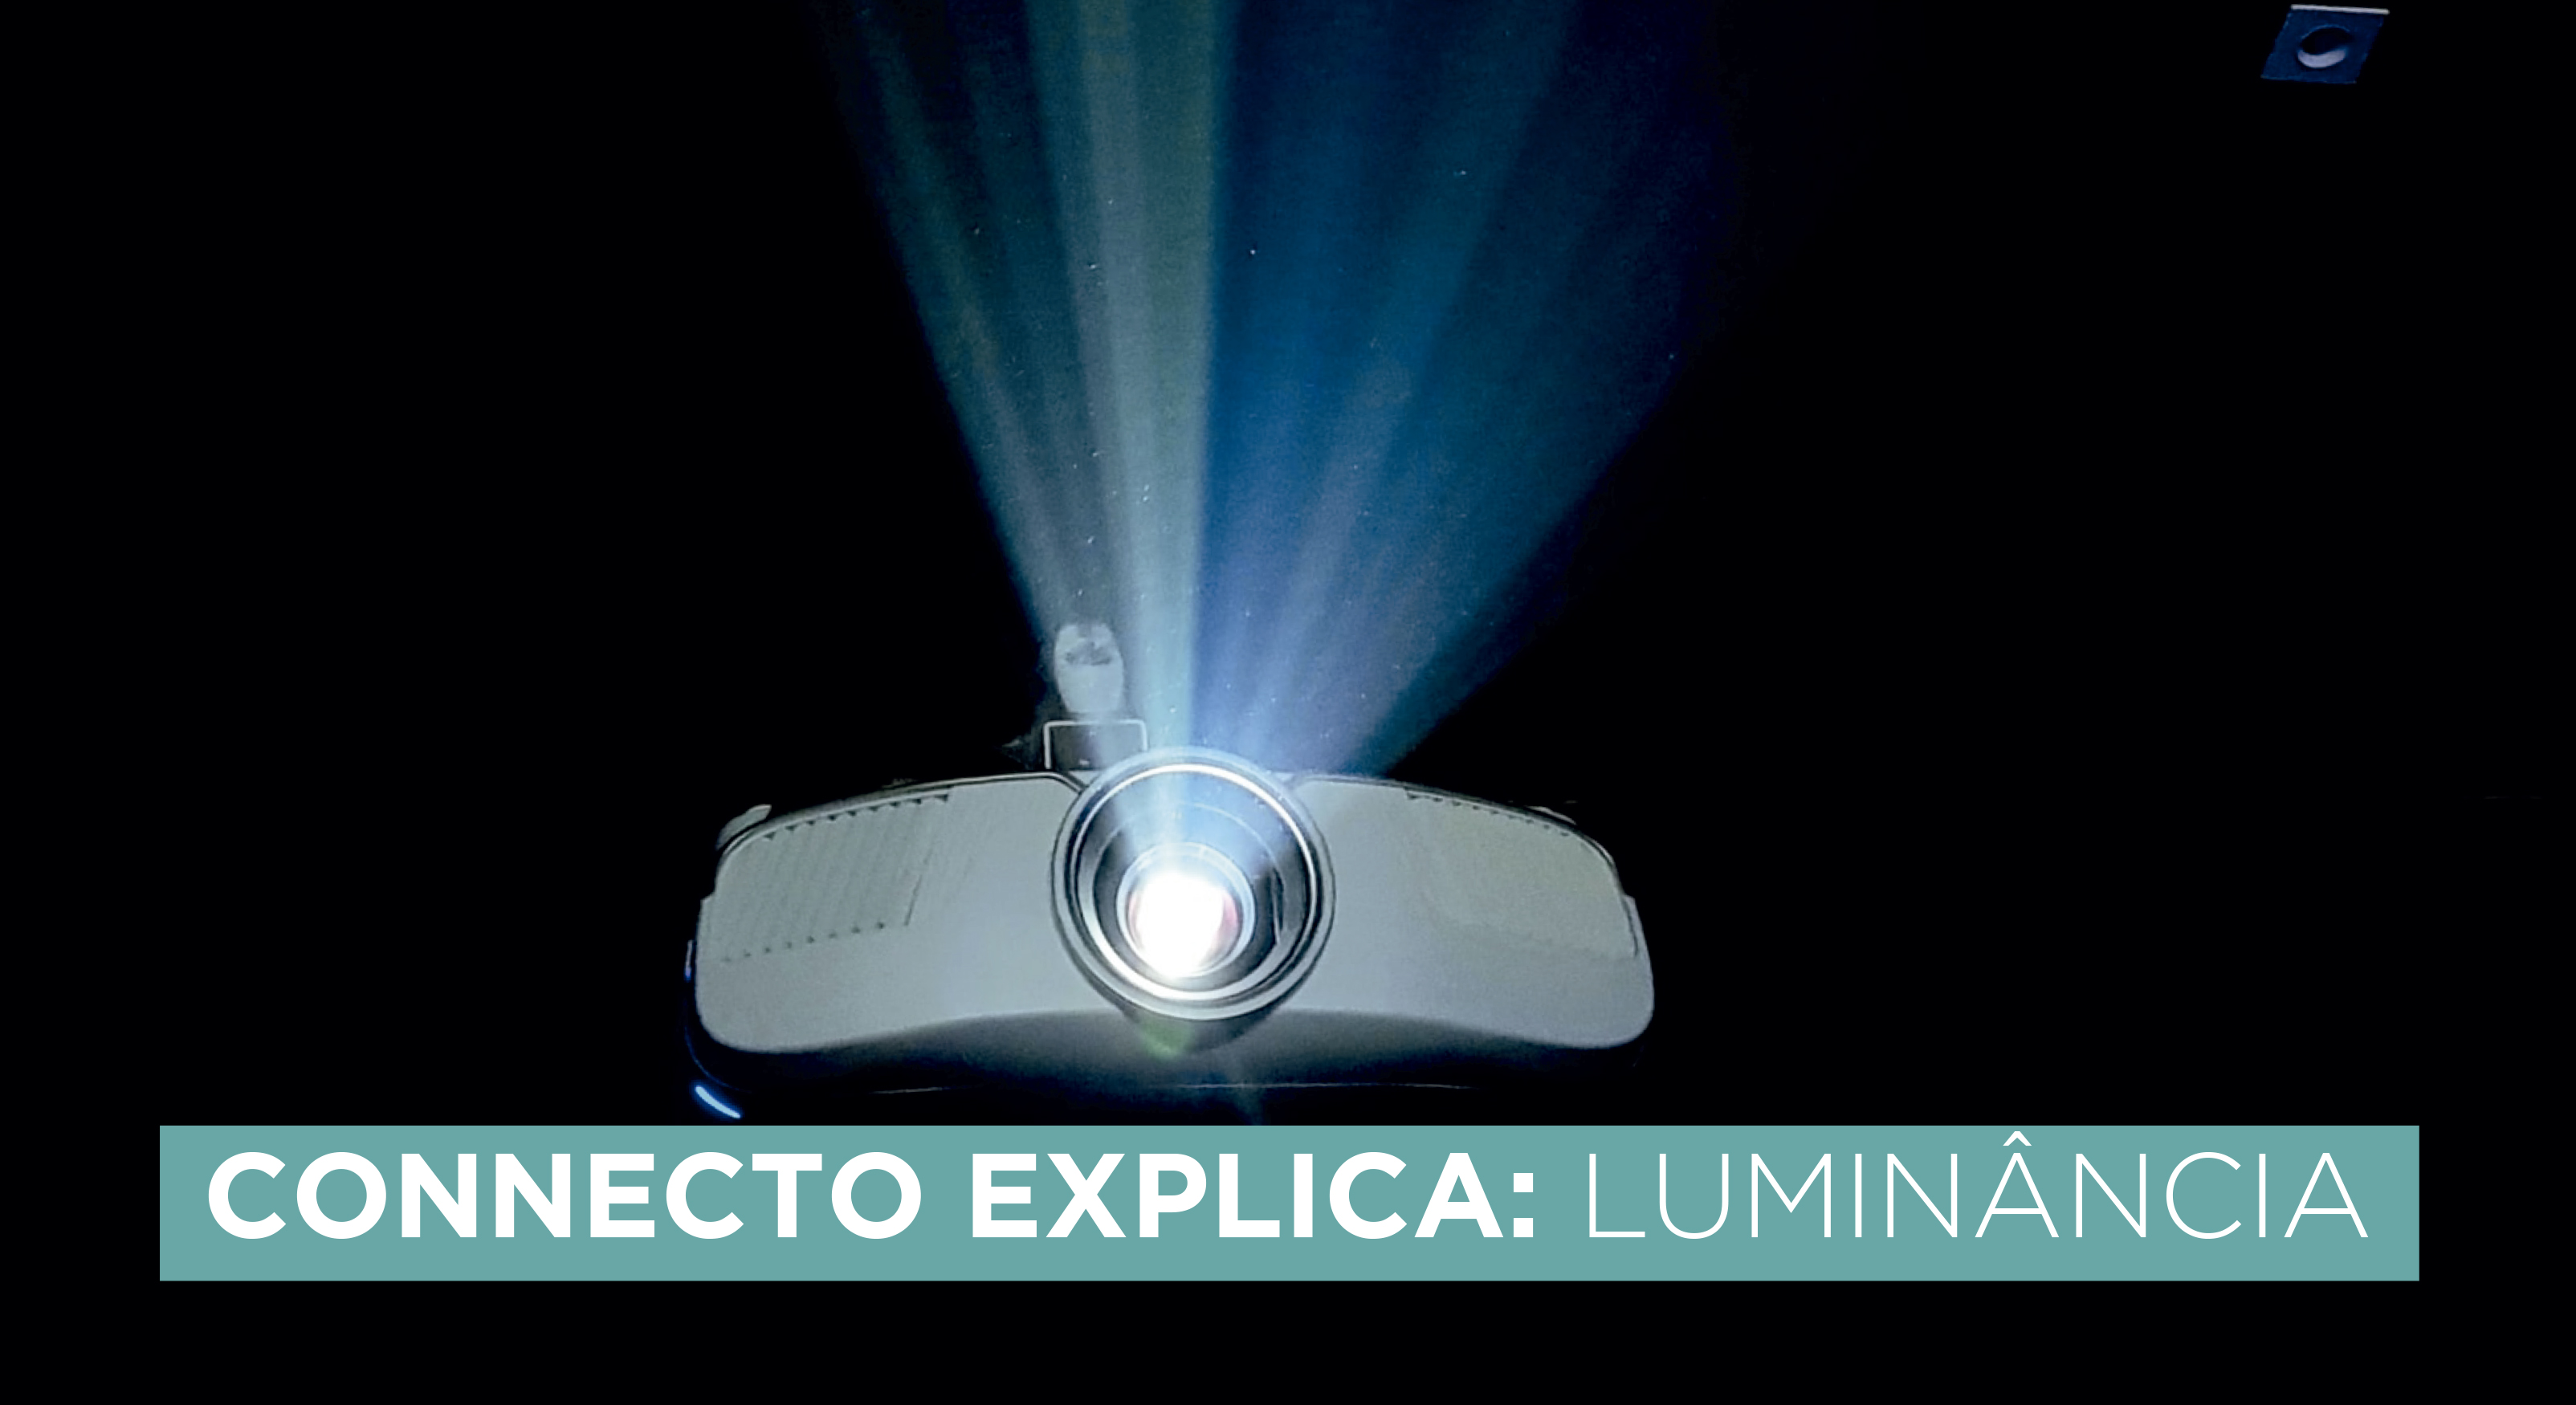 Connecto explica - Luminância: